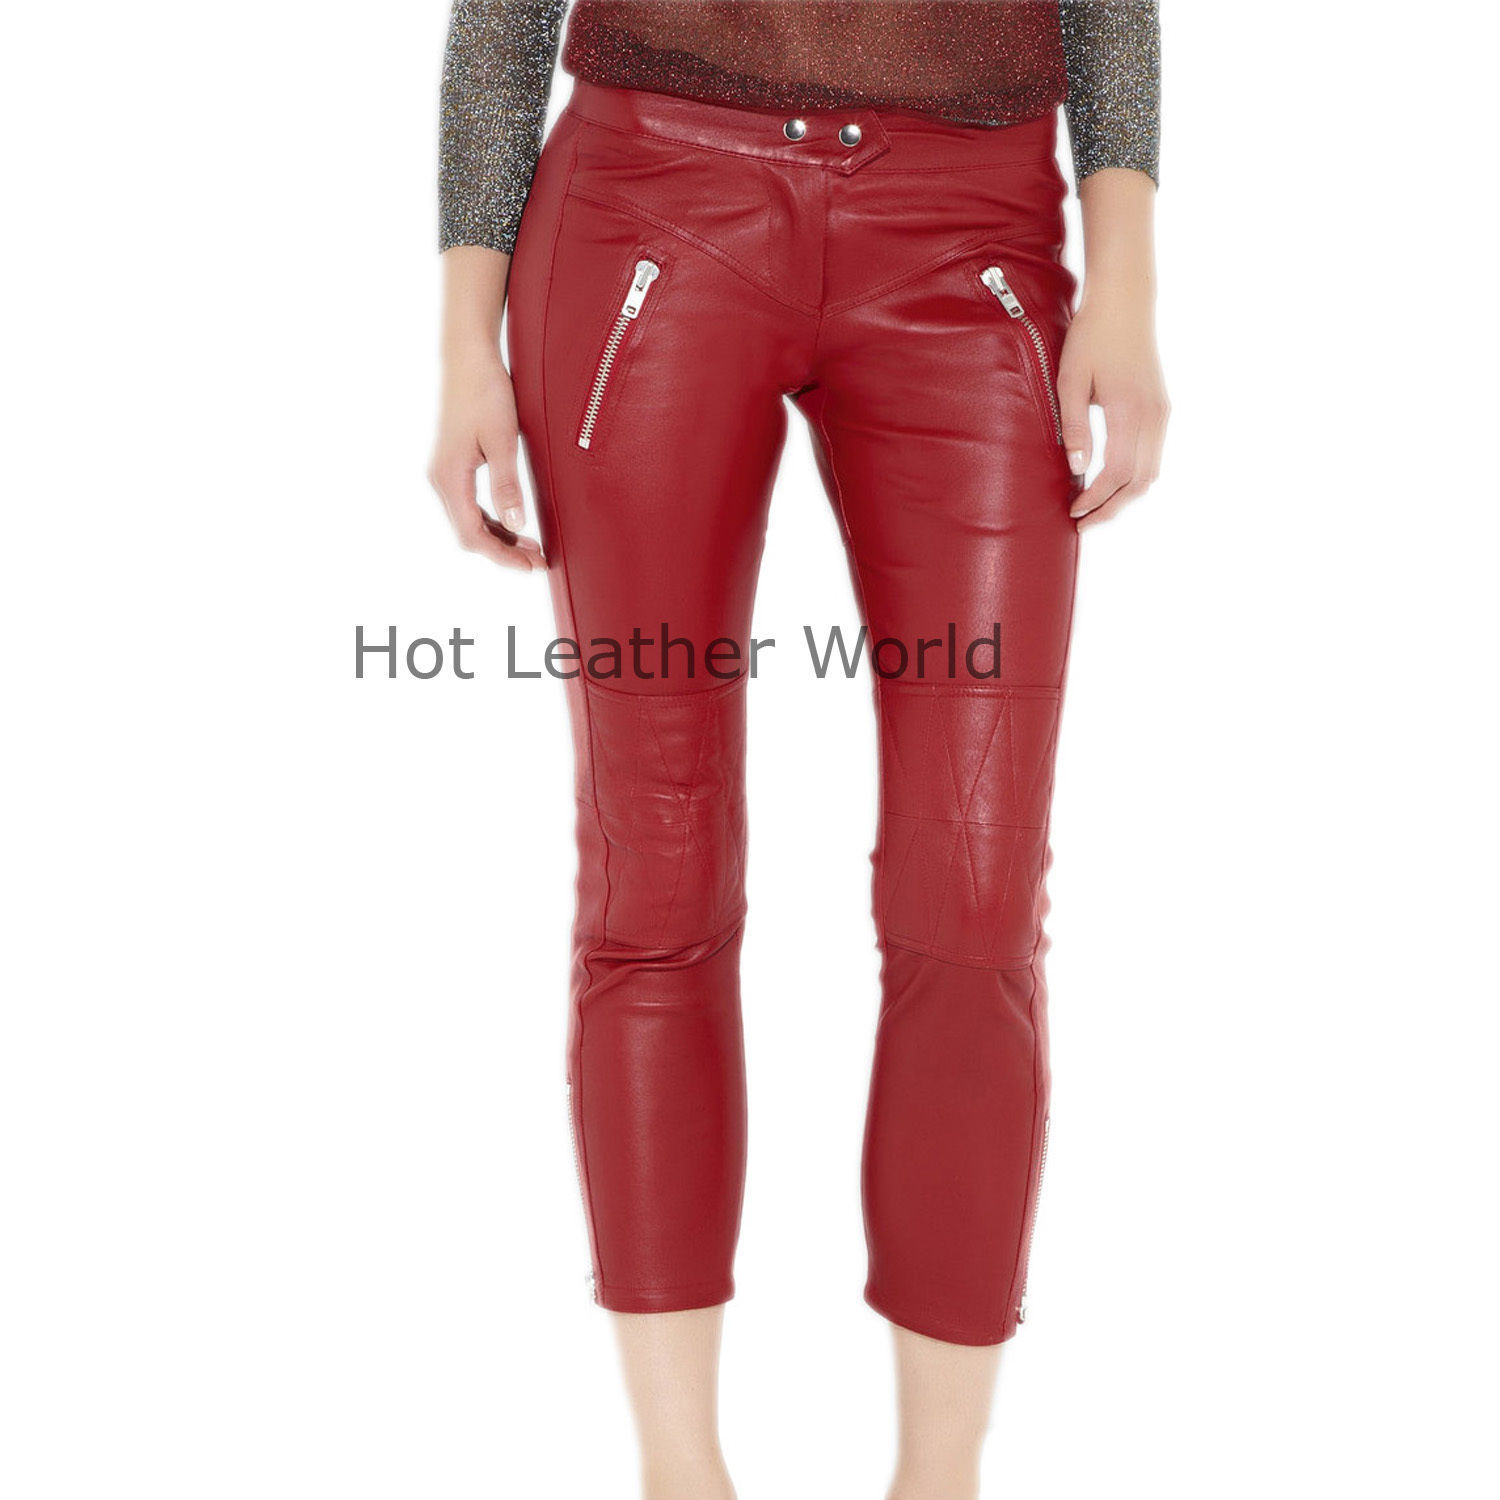 HotLeatherWorld Women Sexy Trendy Women Leather Pant Leather Capri Trouser P-19